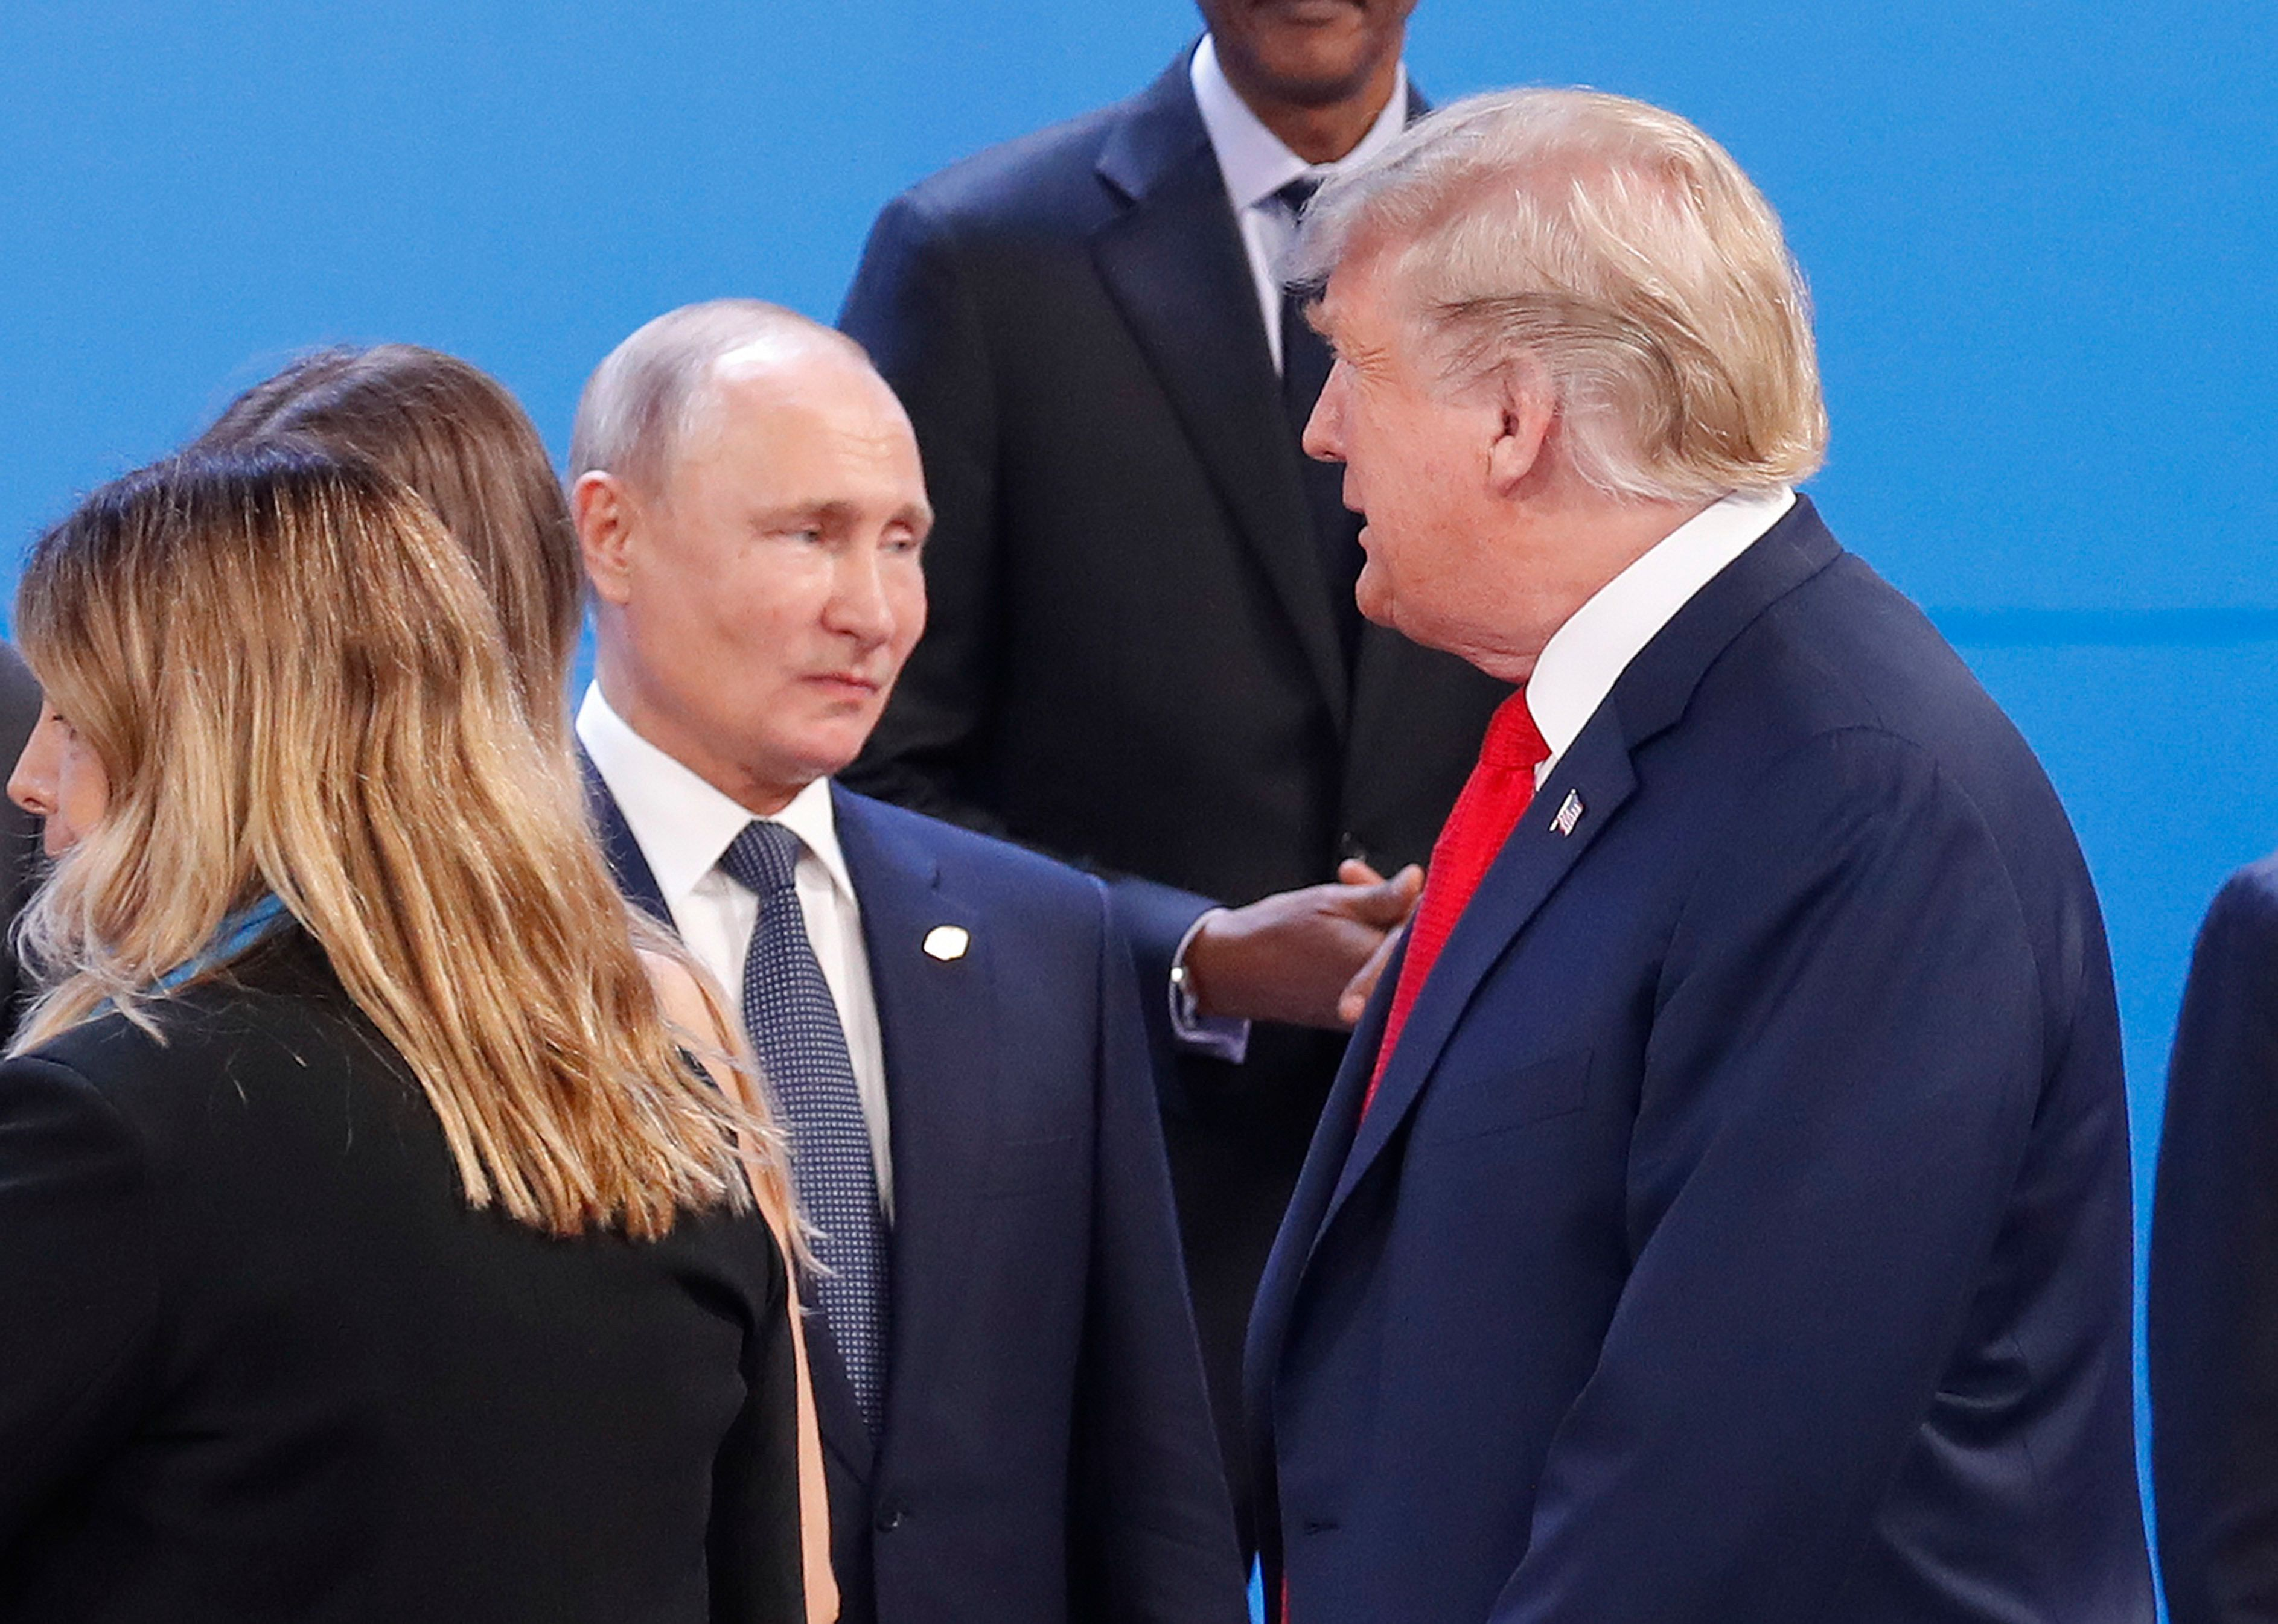 U.S. President Donald Trump and Russian President Vladimir Putin meet on the sidelines of the G-20 summit in Argentina.